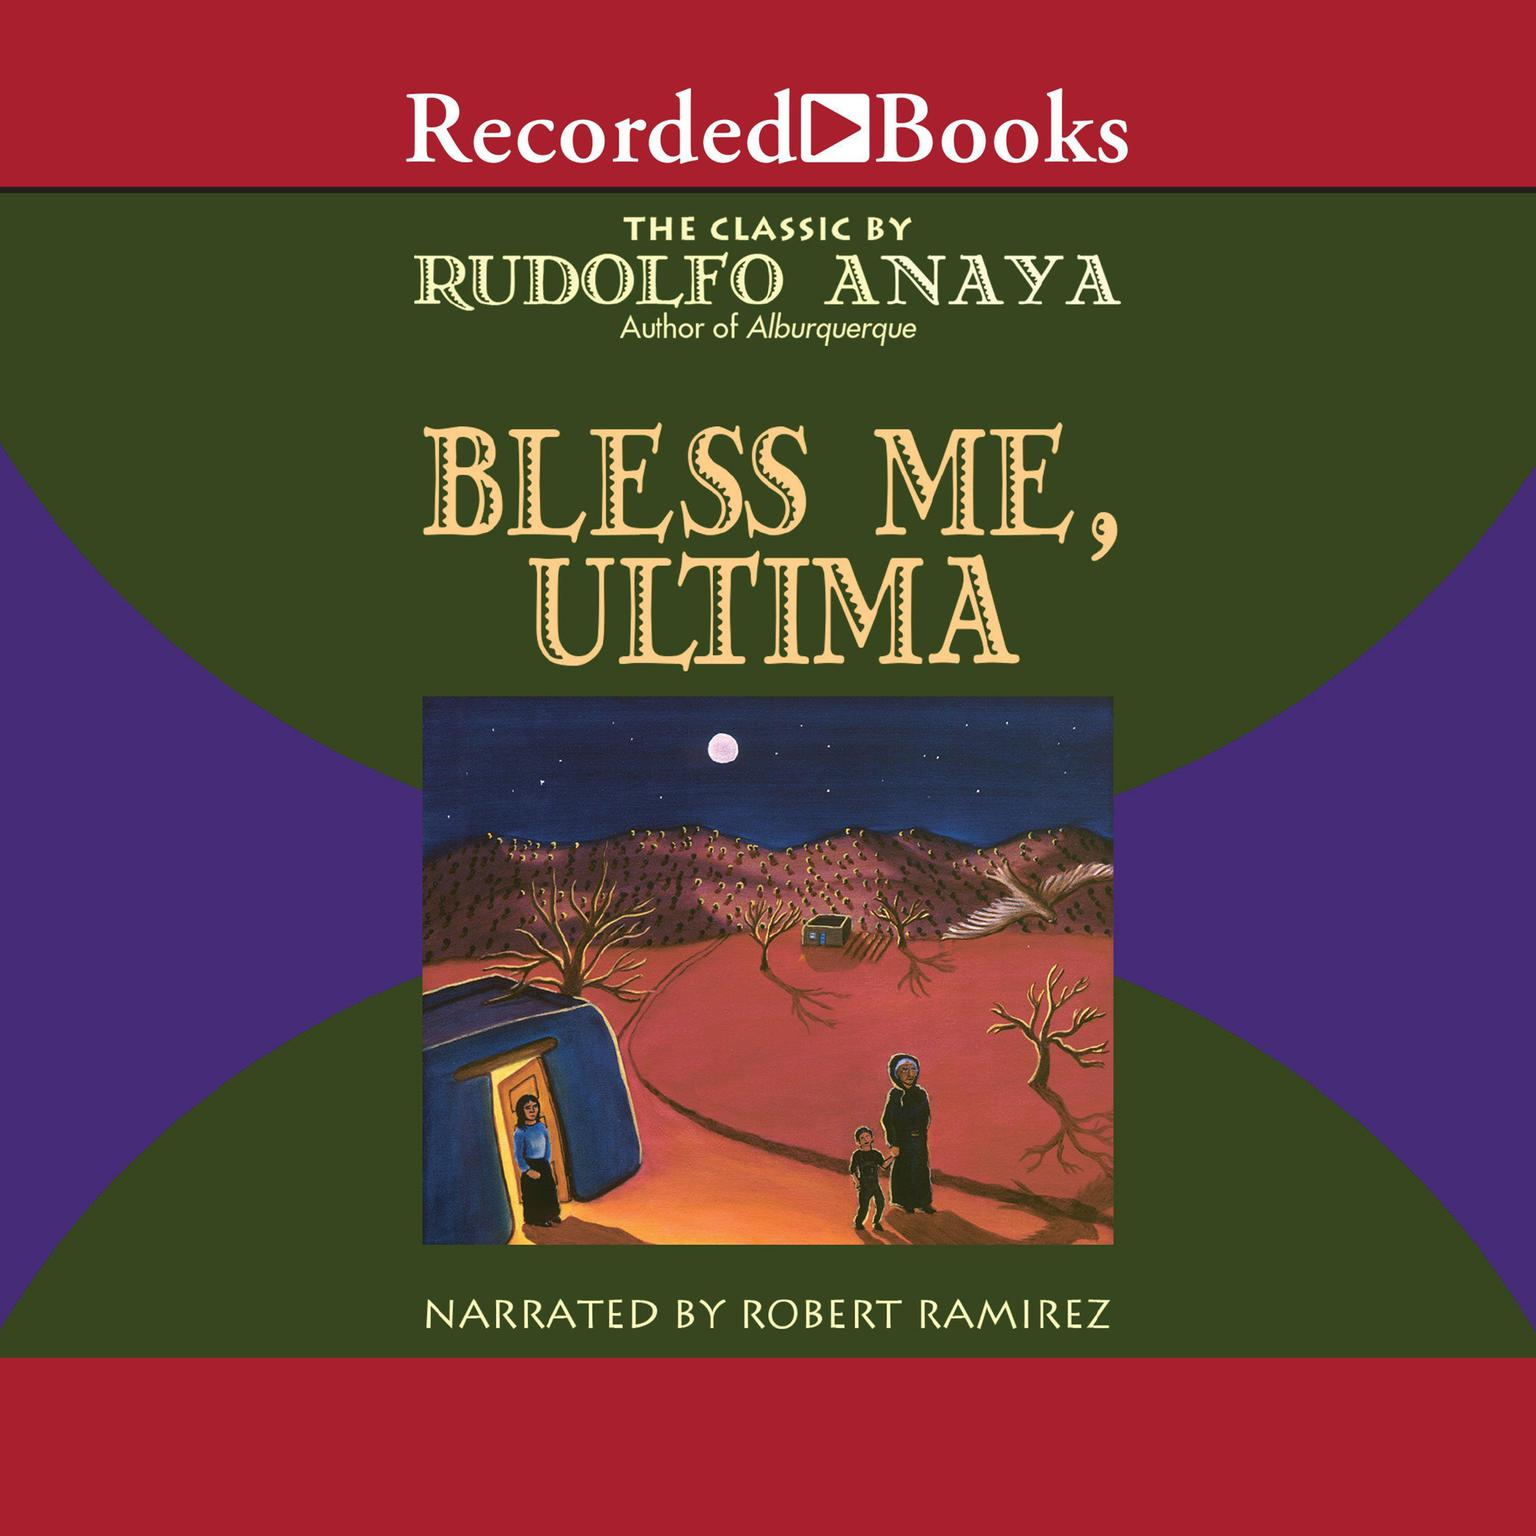 Bless Me, Ultima - Audiobook | Listen Instantly!